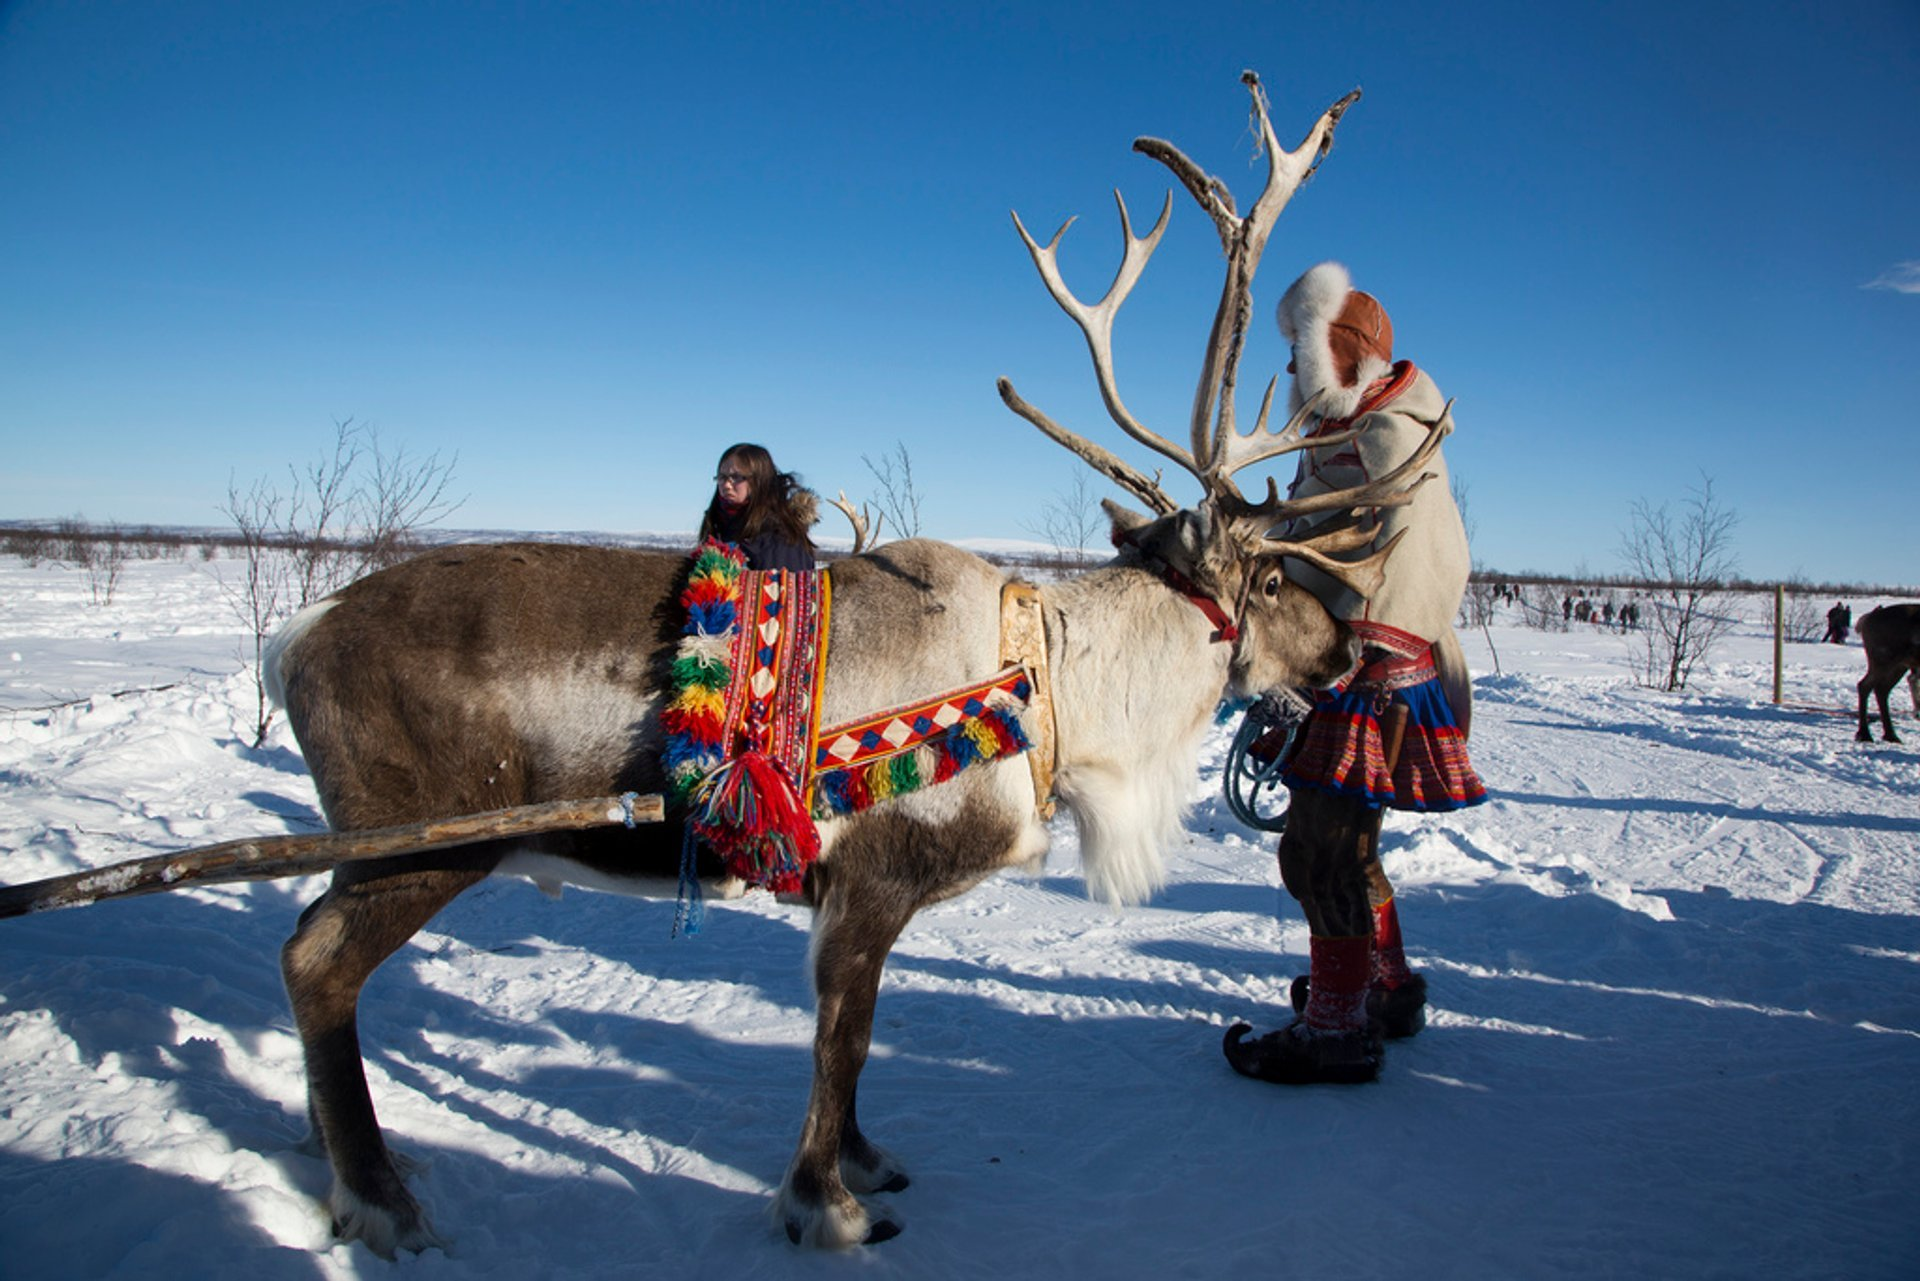 Reindeer ready for sleigh ride, Kautokeino 2020